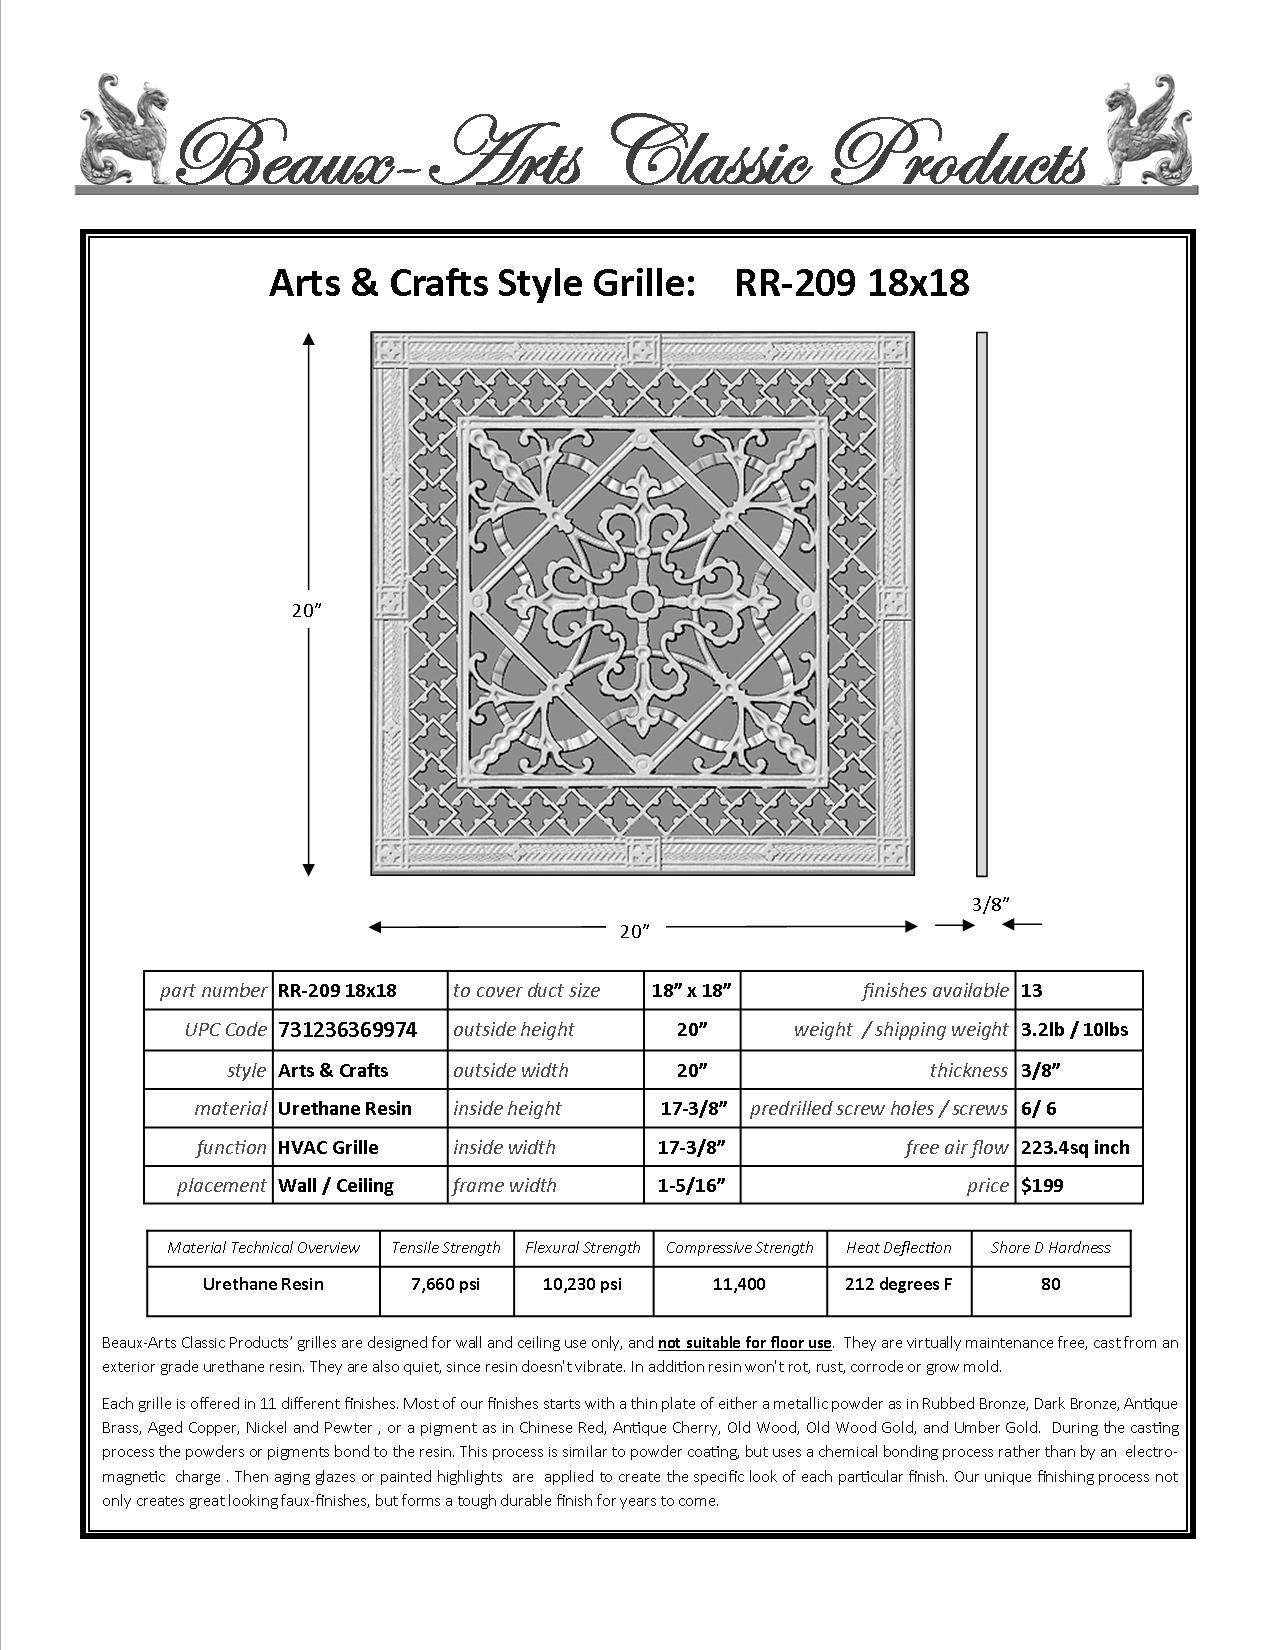 """Decorative Grille, Vent Cover, or Return Register. Made of Urethane Resin to fit over a 18''x18'' duct or opening. Total size of vent is 20""""x20''x3/8'', for wall and ceiling grilles (not for floor use)."""